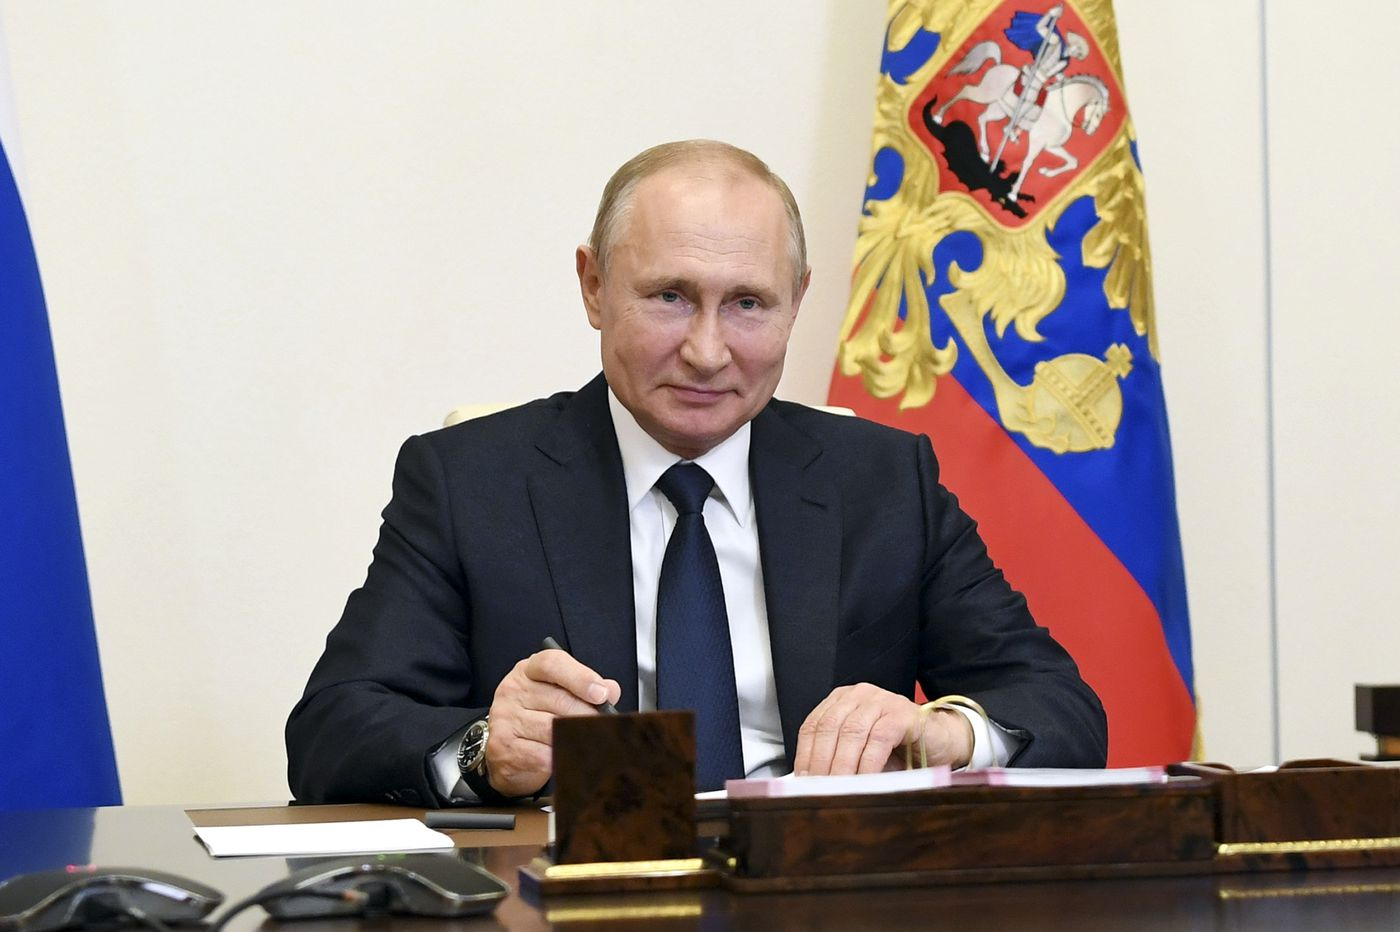 Russian President Vladimir Putin sets July 1 for vote to extend his rule until 2036